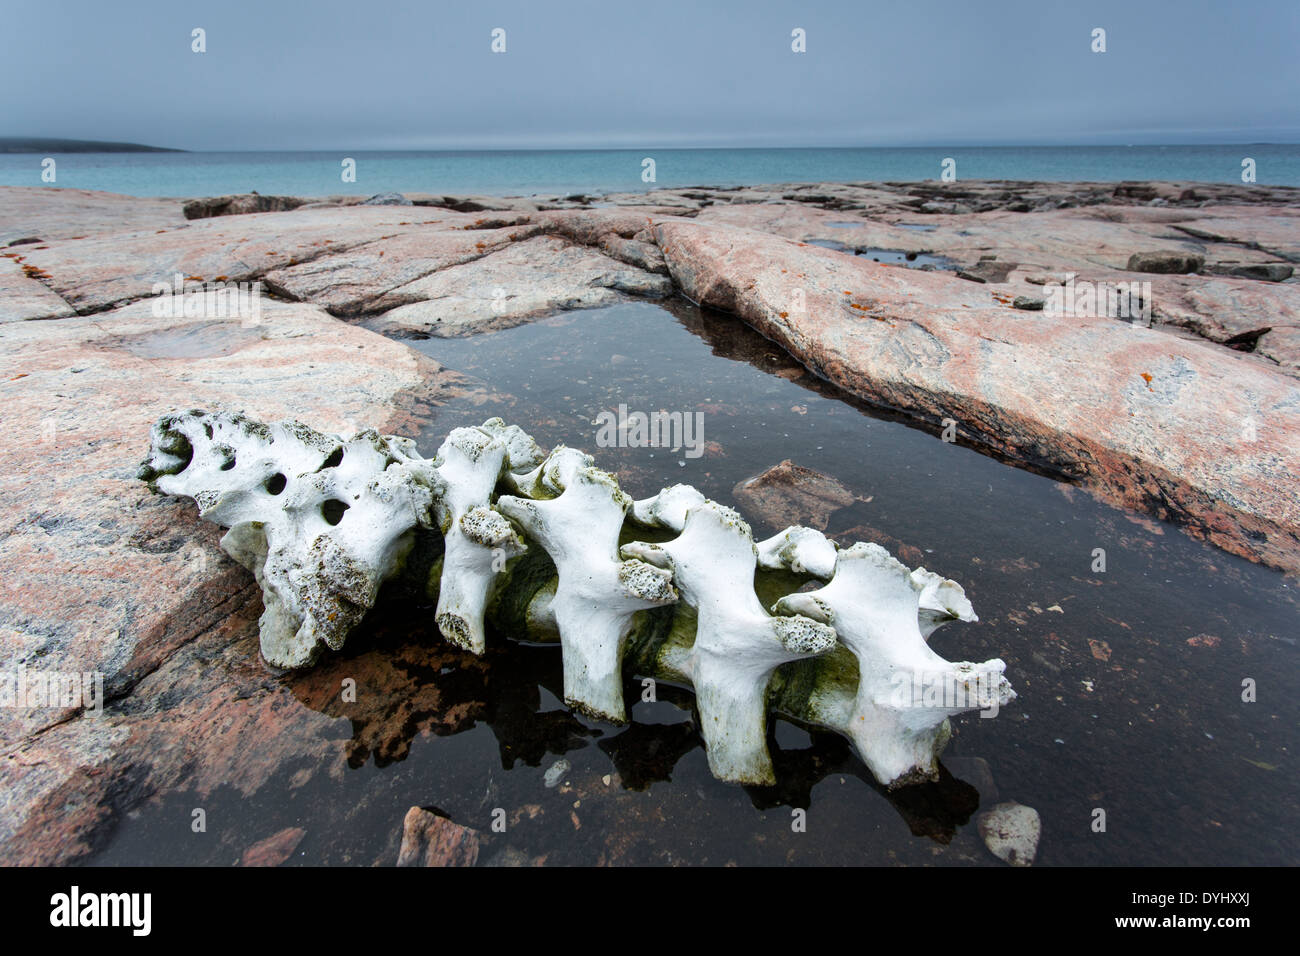 Canada Nunavut Territory Vansittart Island Bones from slaughtered Beluga Whale left by Inuit hunters along Hudson Bay near - Stock Image